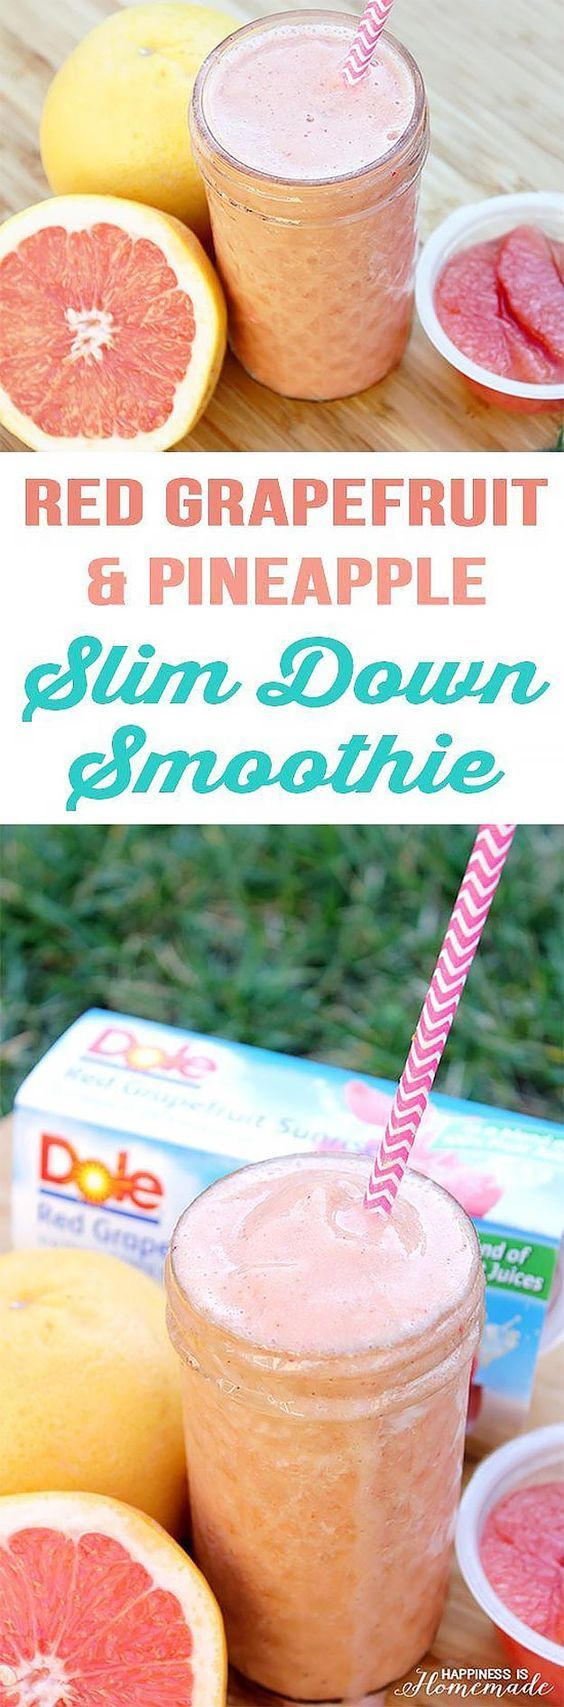 Healthy smoothie recipes and easy ideas perfect for breakfast energy. Low calorie and high protein recipes for weightloss and to lose weight. Simple homemade recipe ideas that kids love. Red Grapefruit and Pineapple Slim Down Smoothie Healthy smoothie recipes and easy ideas perfect for breakfast energy. Low calorie and high protein recipes for weightloss and to lose weight. Simple homemade recipe ideas that kids love. Red Grapefruit and Pineapple Slim Down Smoothie diyjoy/...